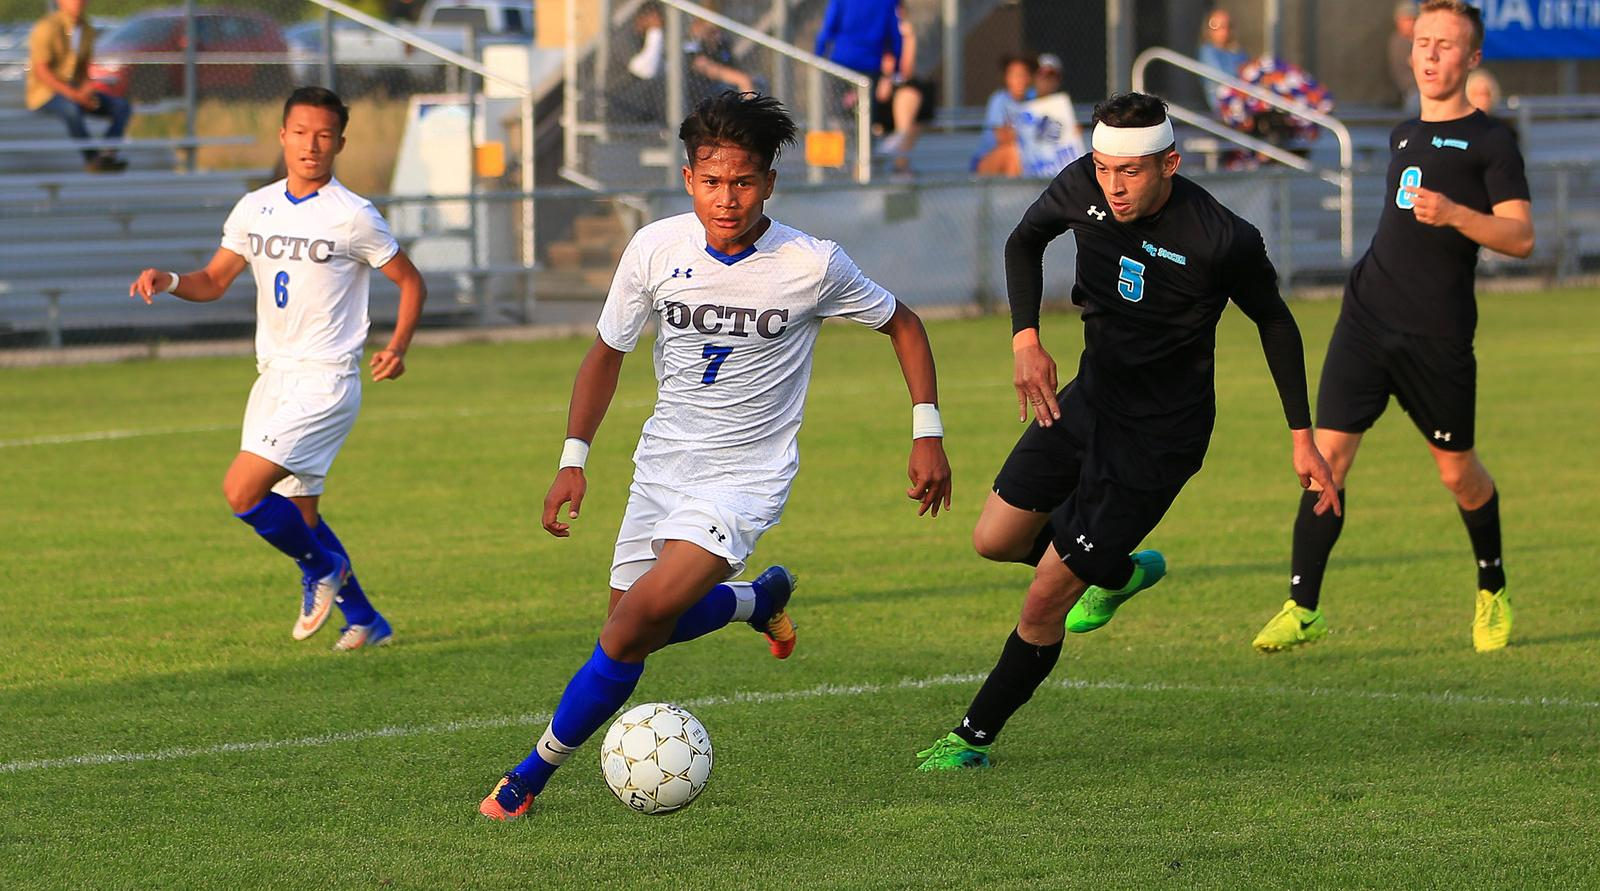 DCTC Men's Soccer opens season with 2-2 record